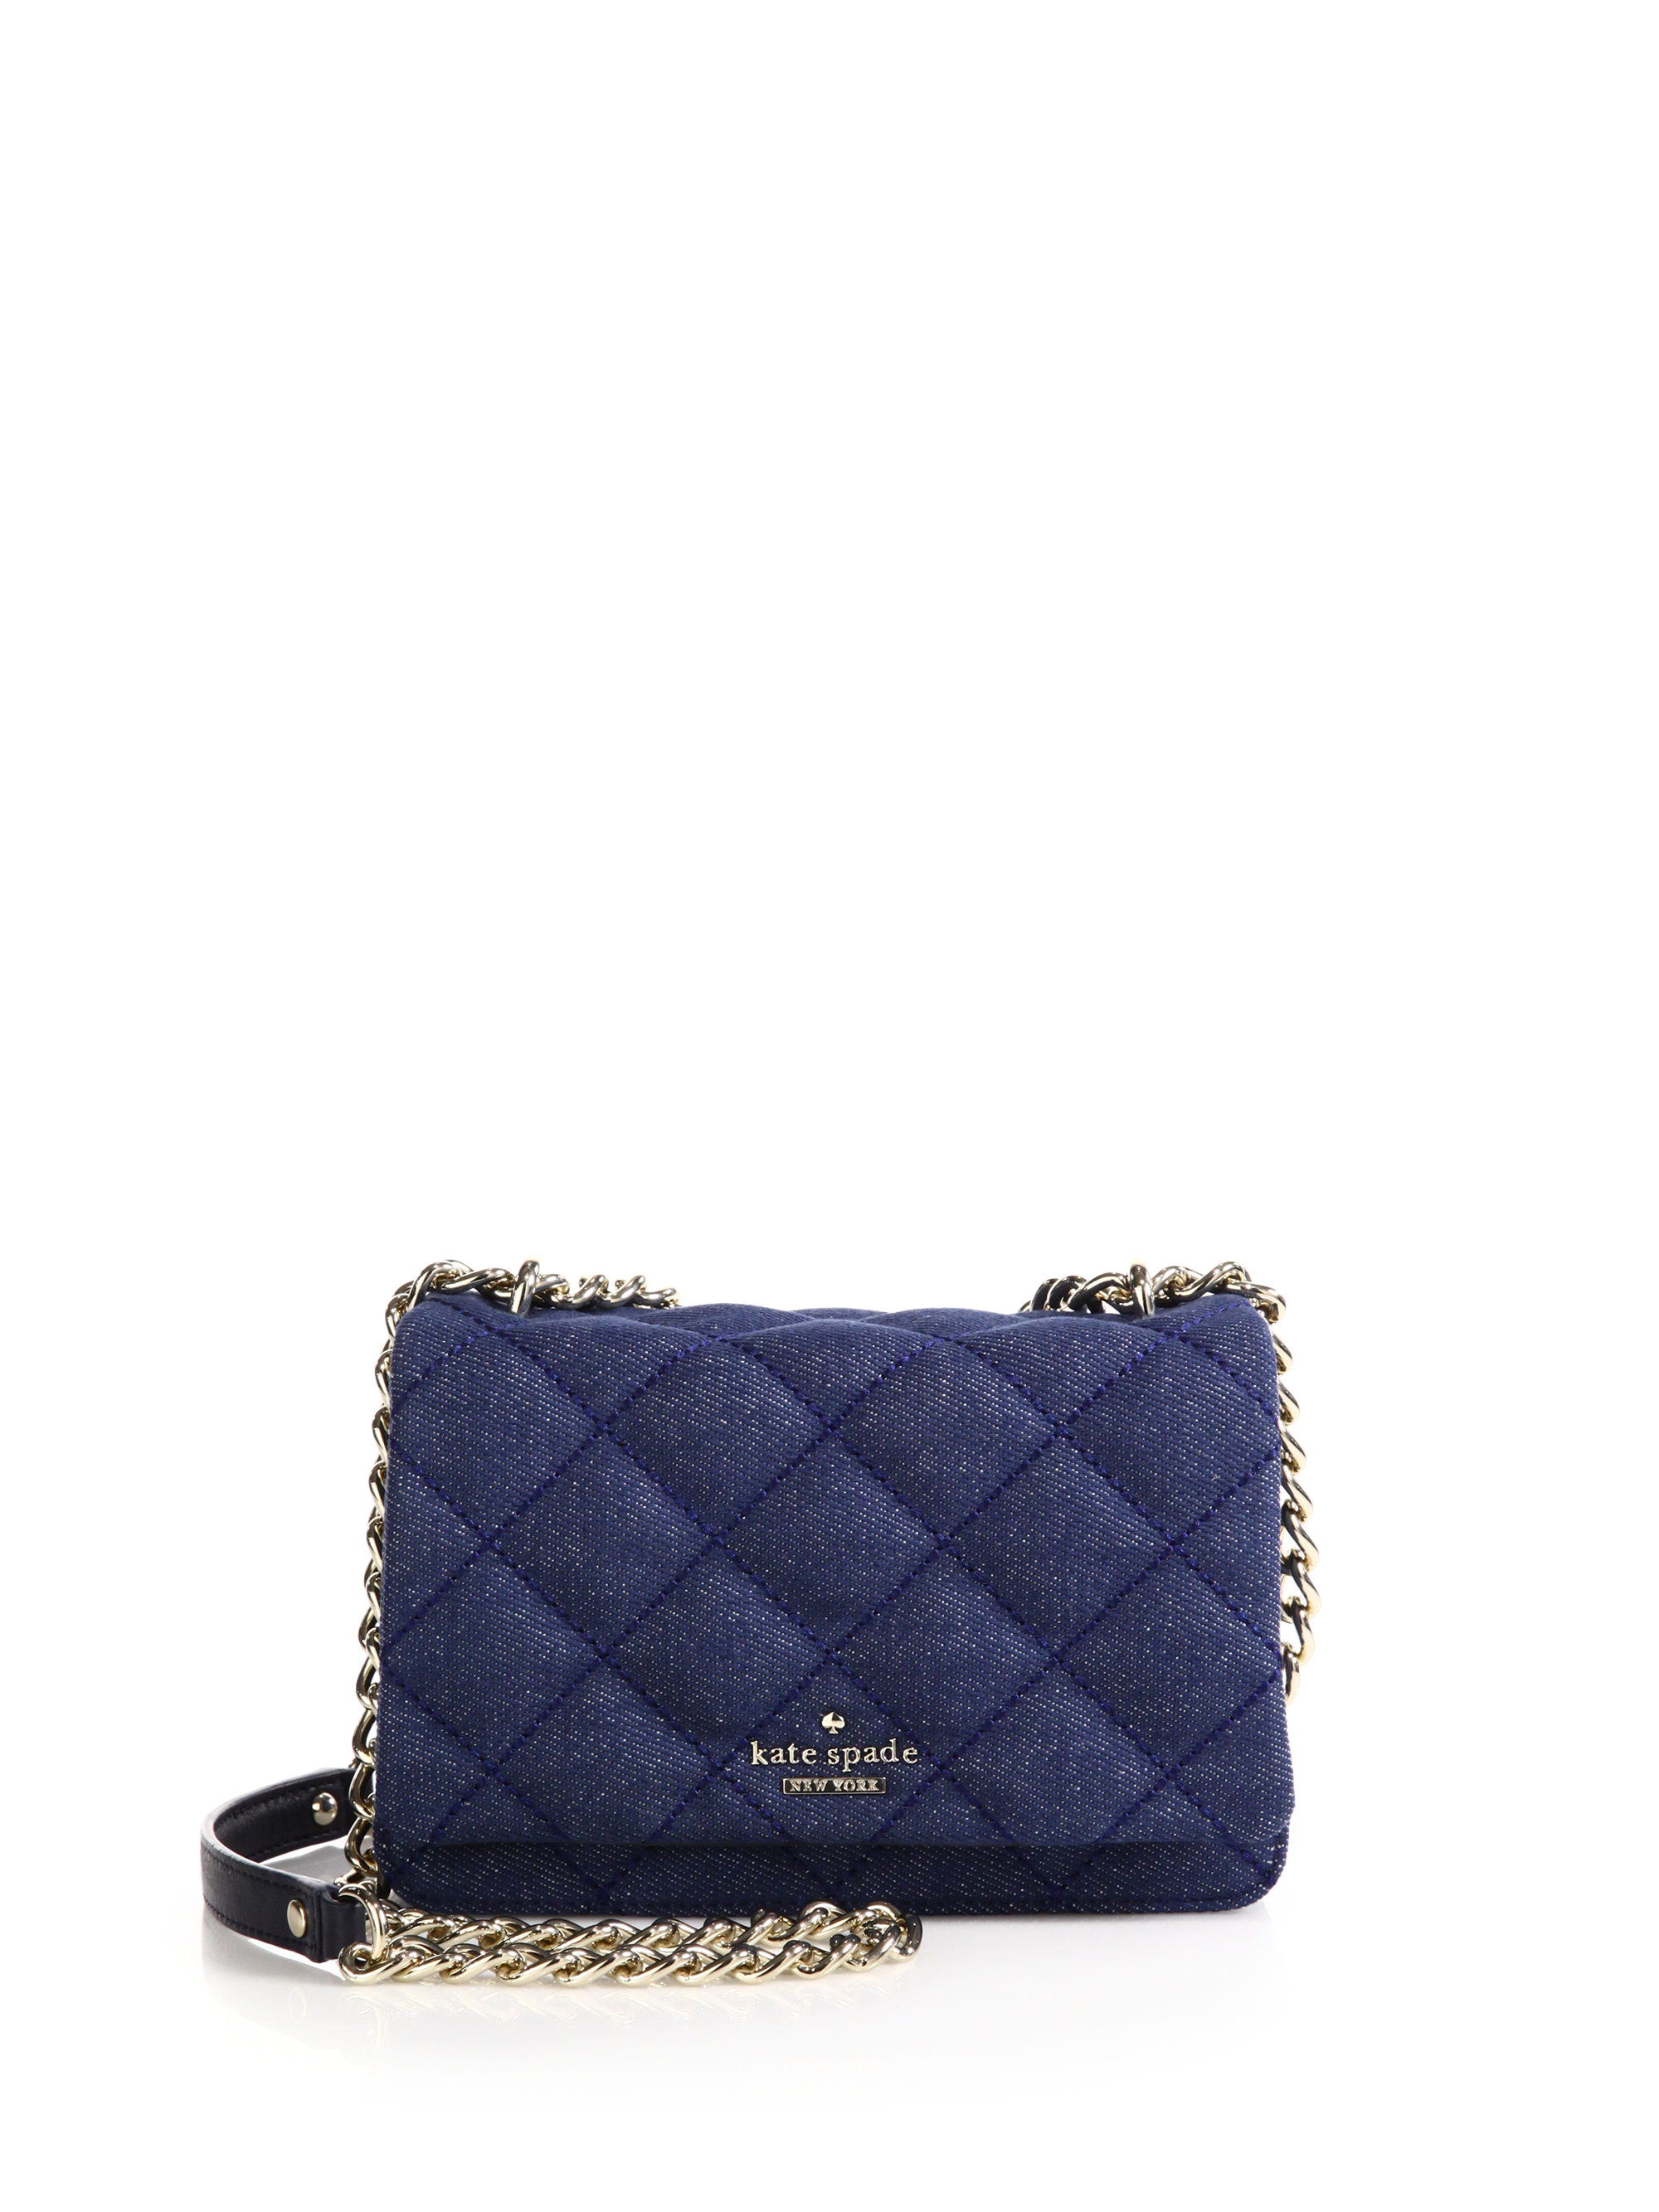 Kate Spade New York Emerson Place Vivenna Quilted Denim